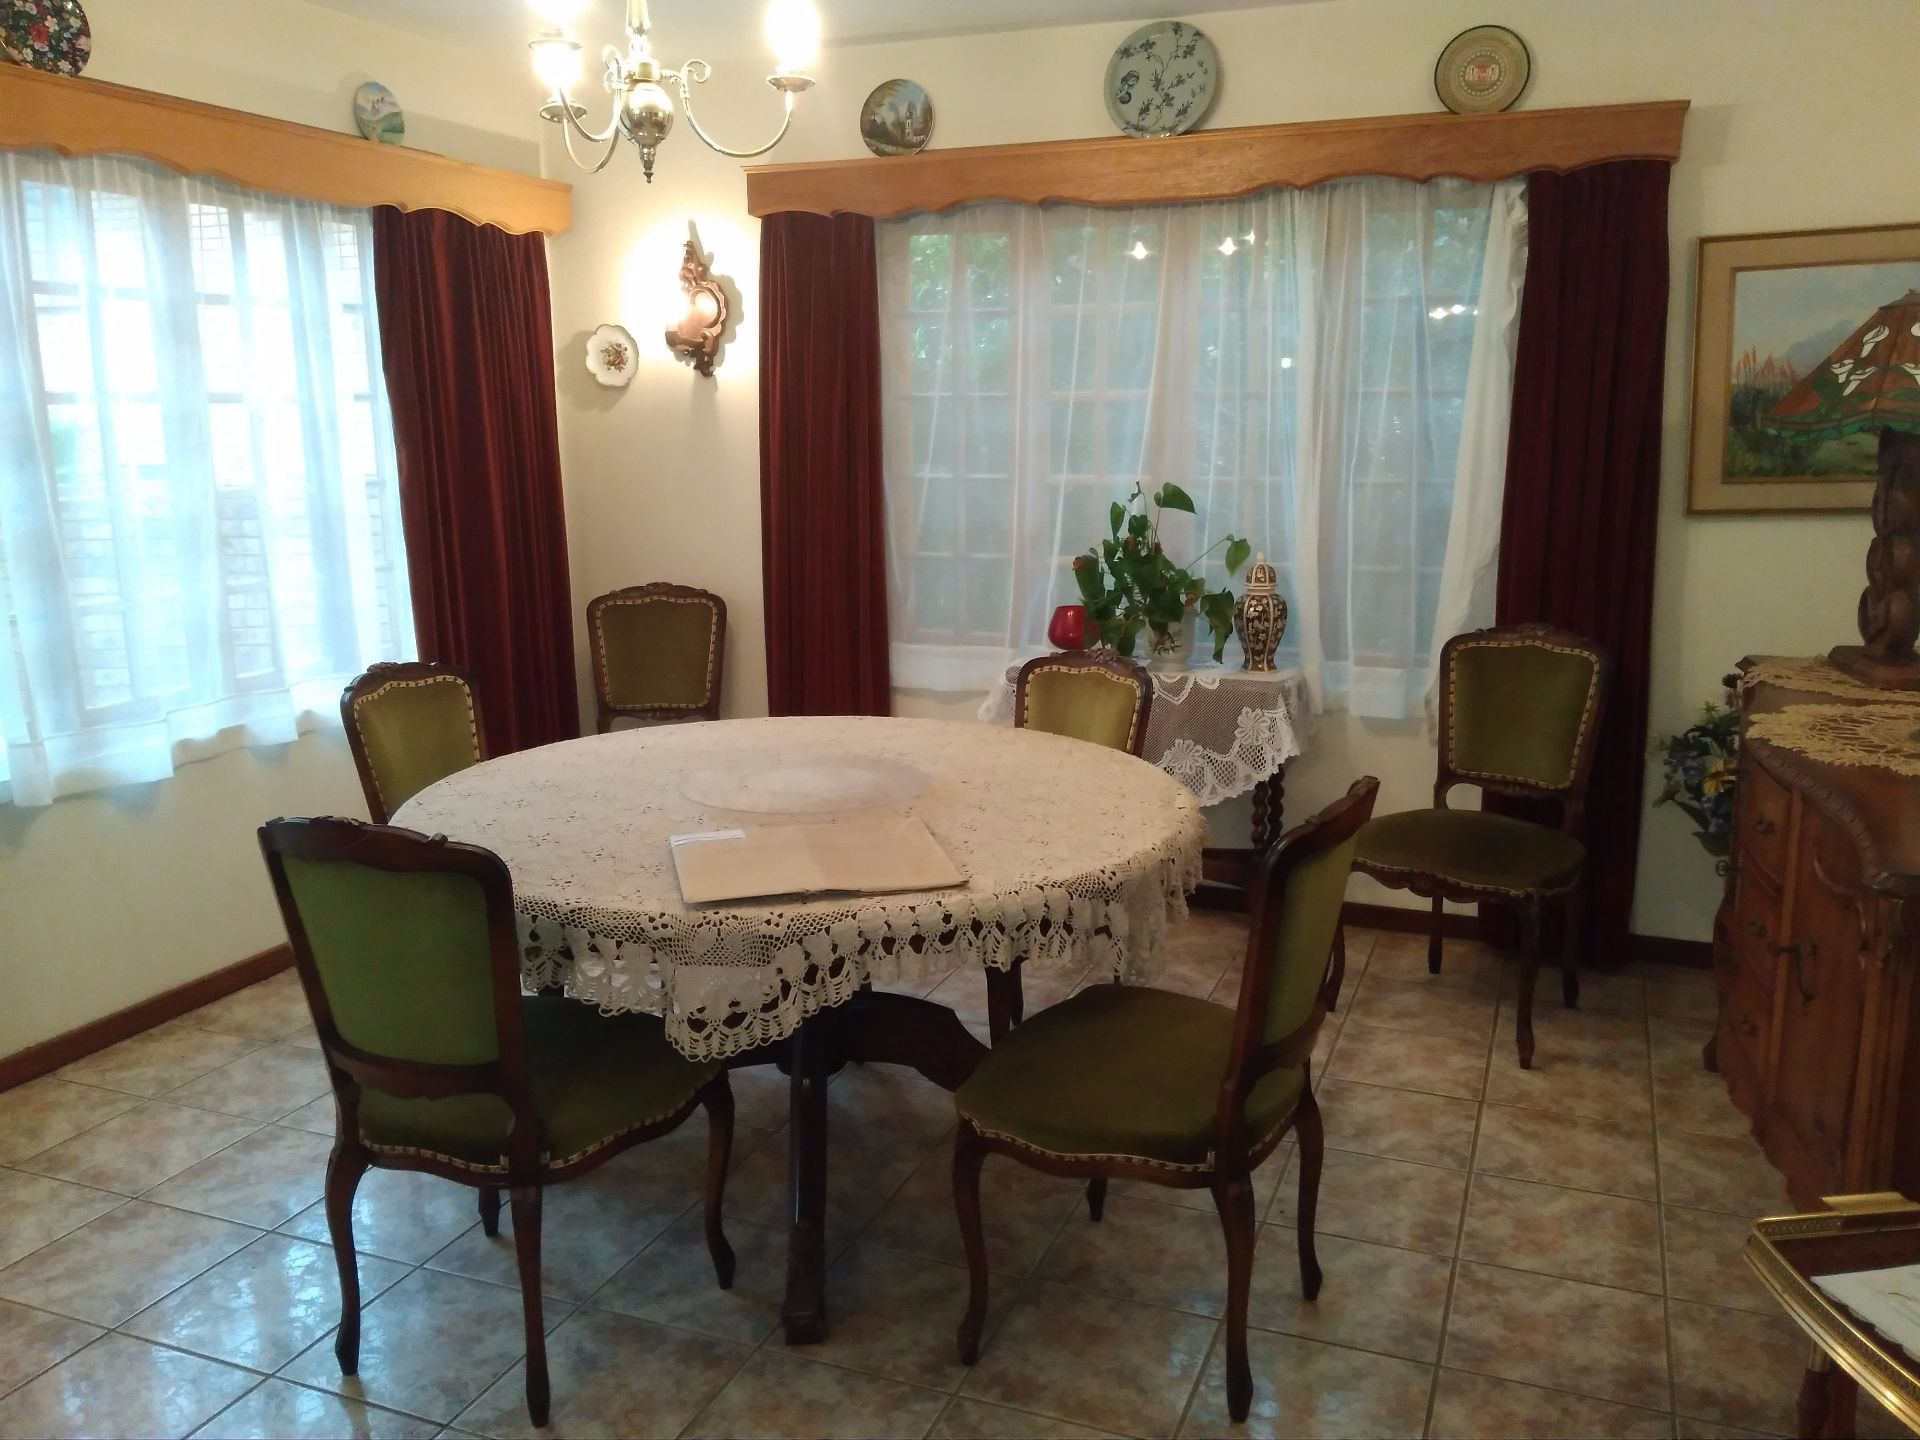 House in Schoemansville - dining area